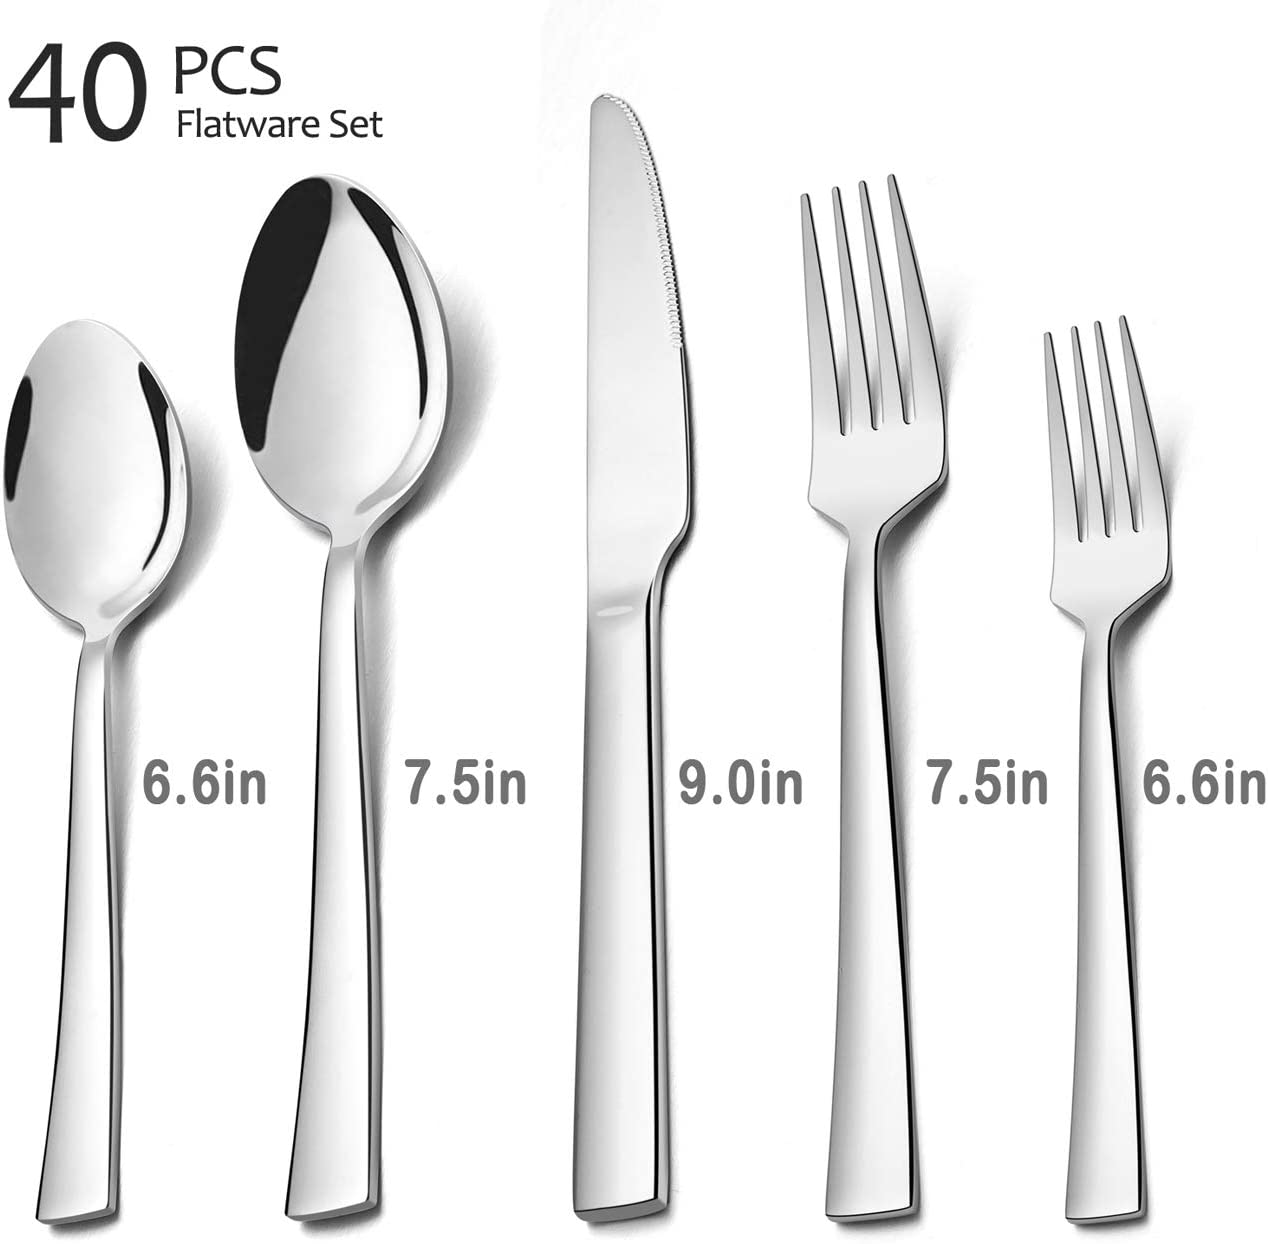 Includes Knives//Forks//Spoons Elegant Stylish Eating Utensils Service for 8 Dishwasher Safe 40 Pieces Silverware Set Mirror Polished HaWare Stainless Steel Modern Flatware Cutlery Set